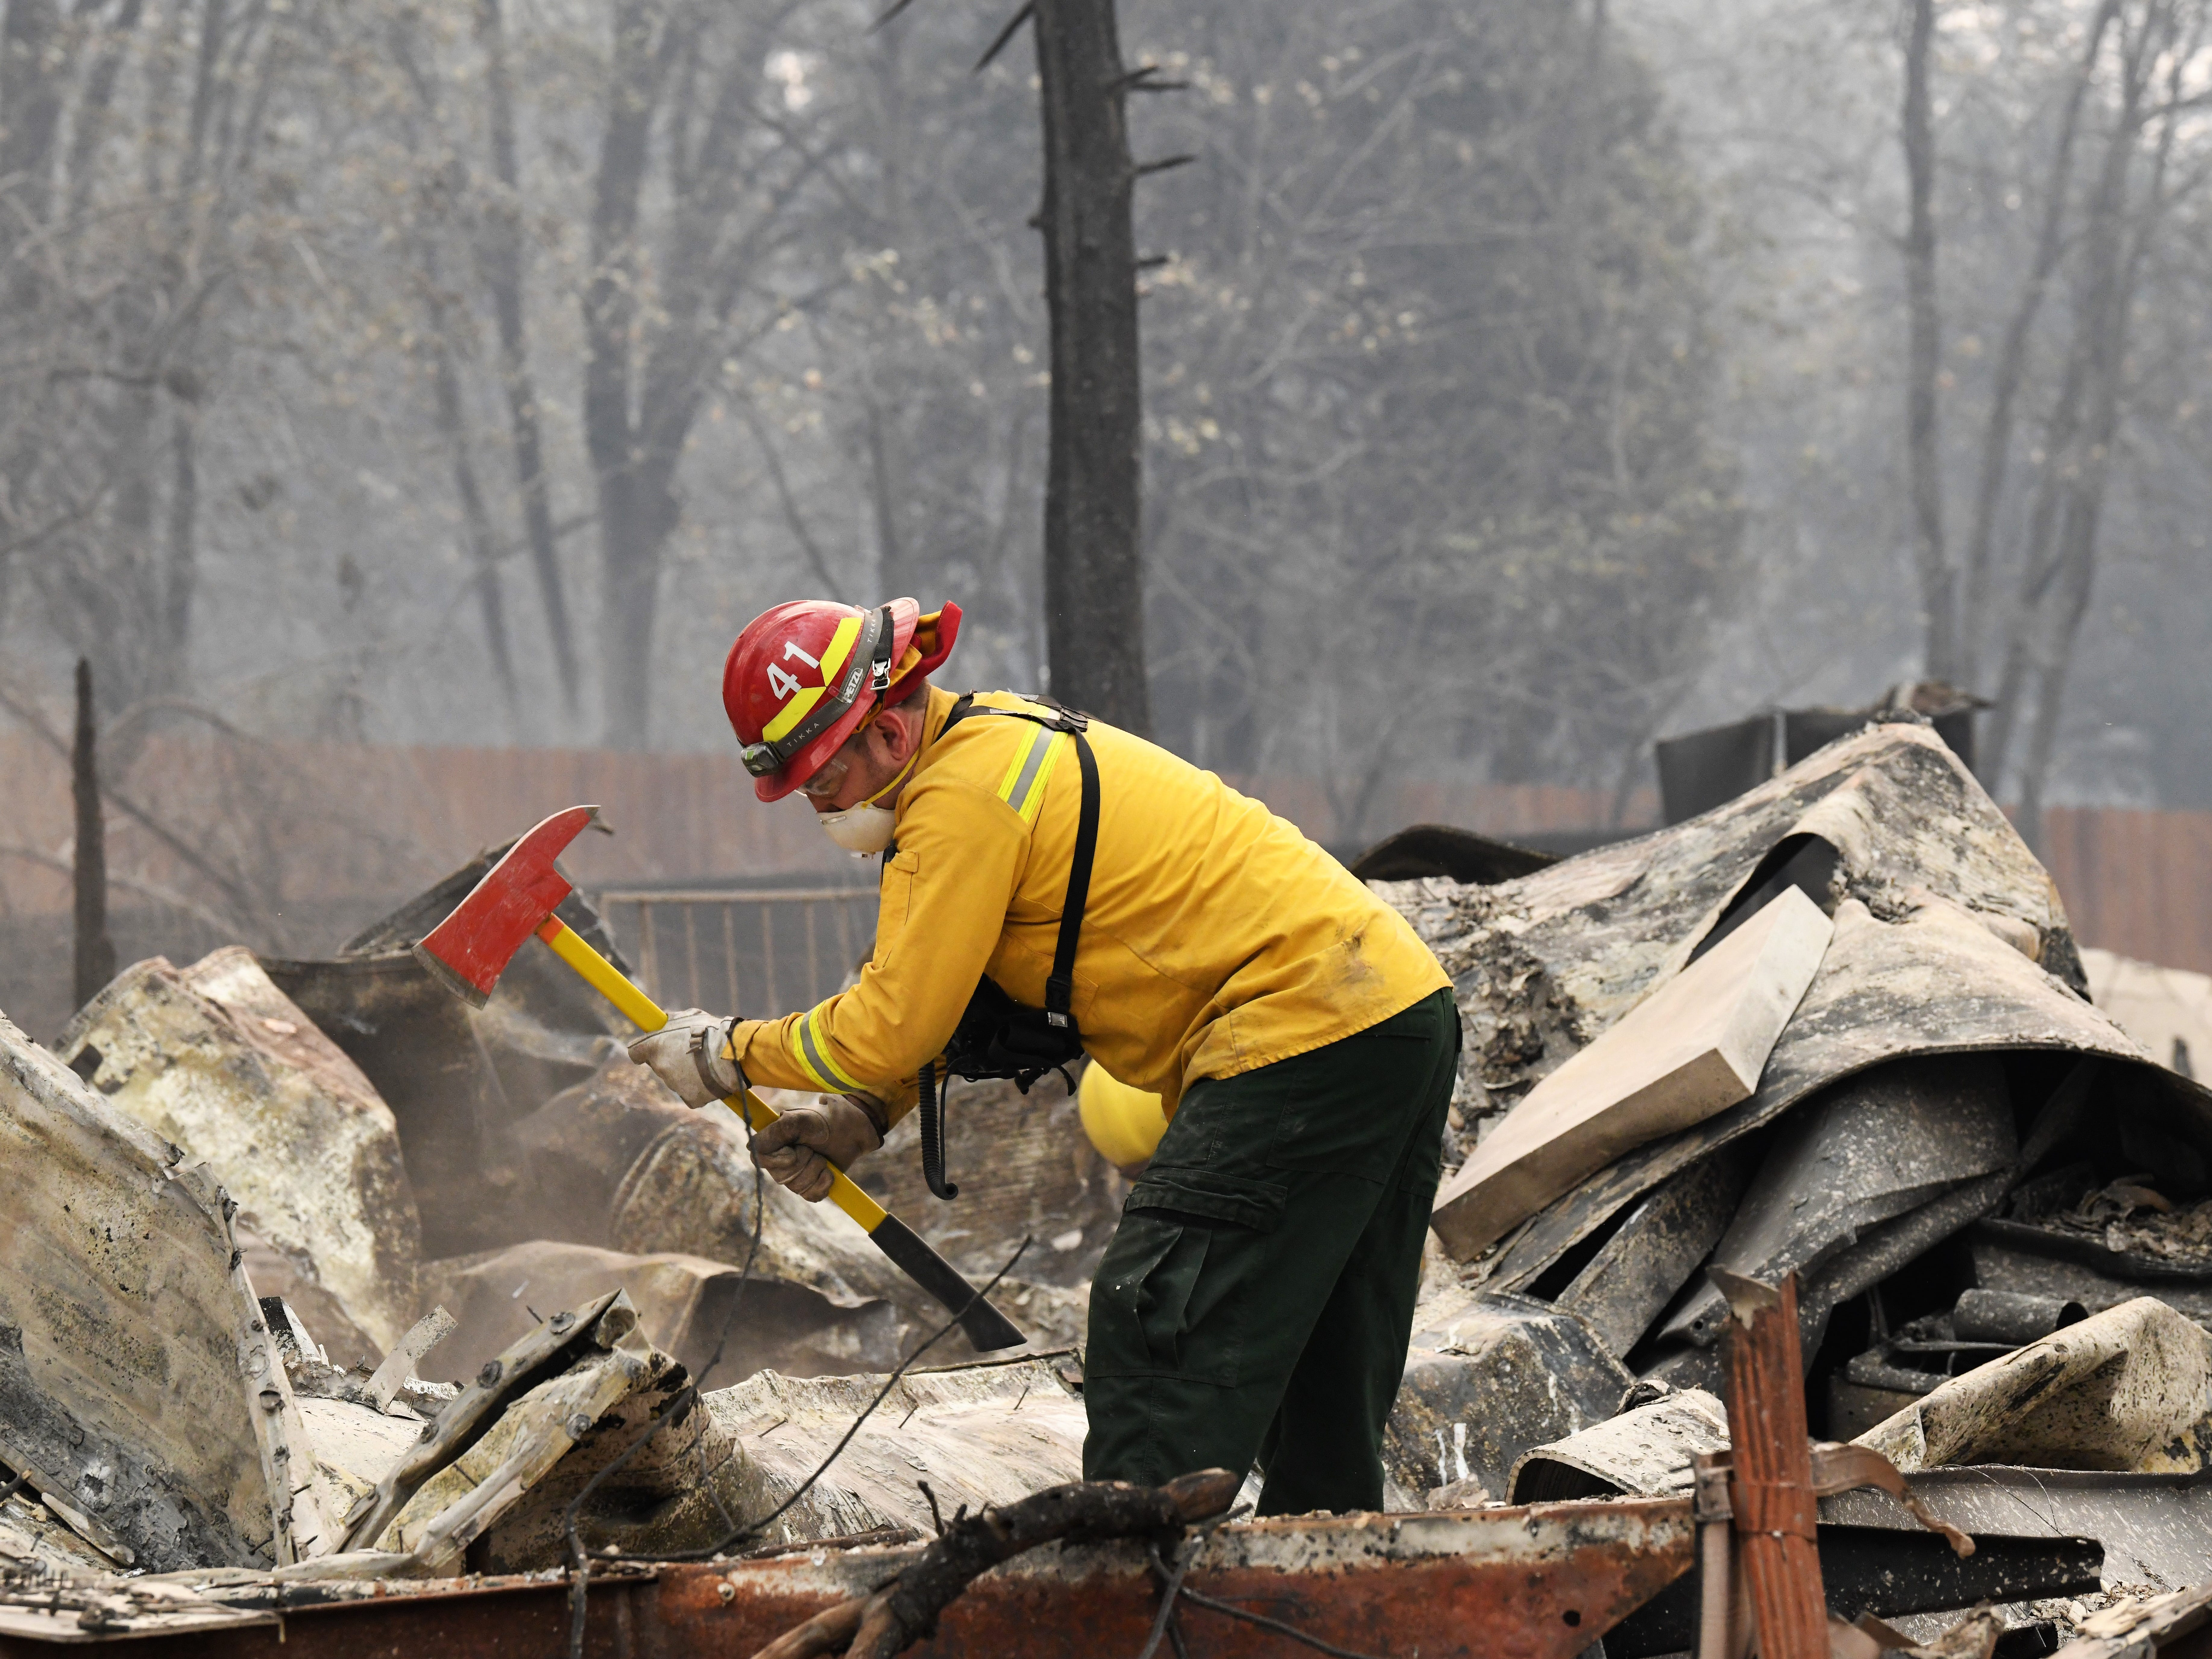 Camp Fire death toll rises to 48, becoming California's deadliest wildfire in modern history